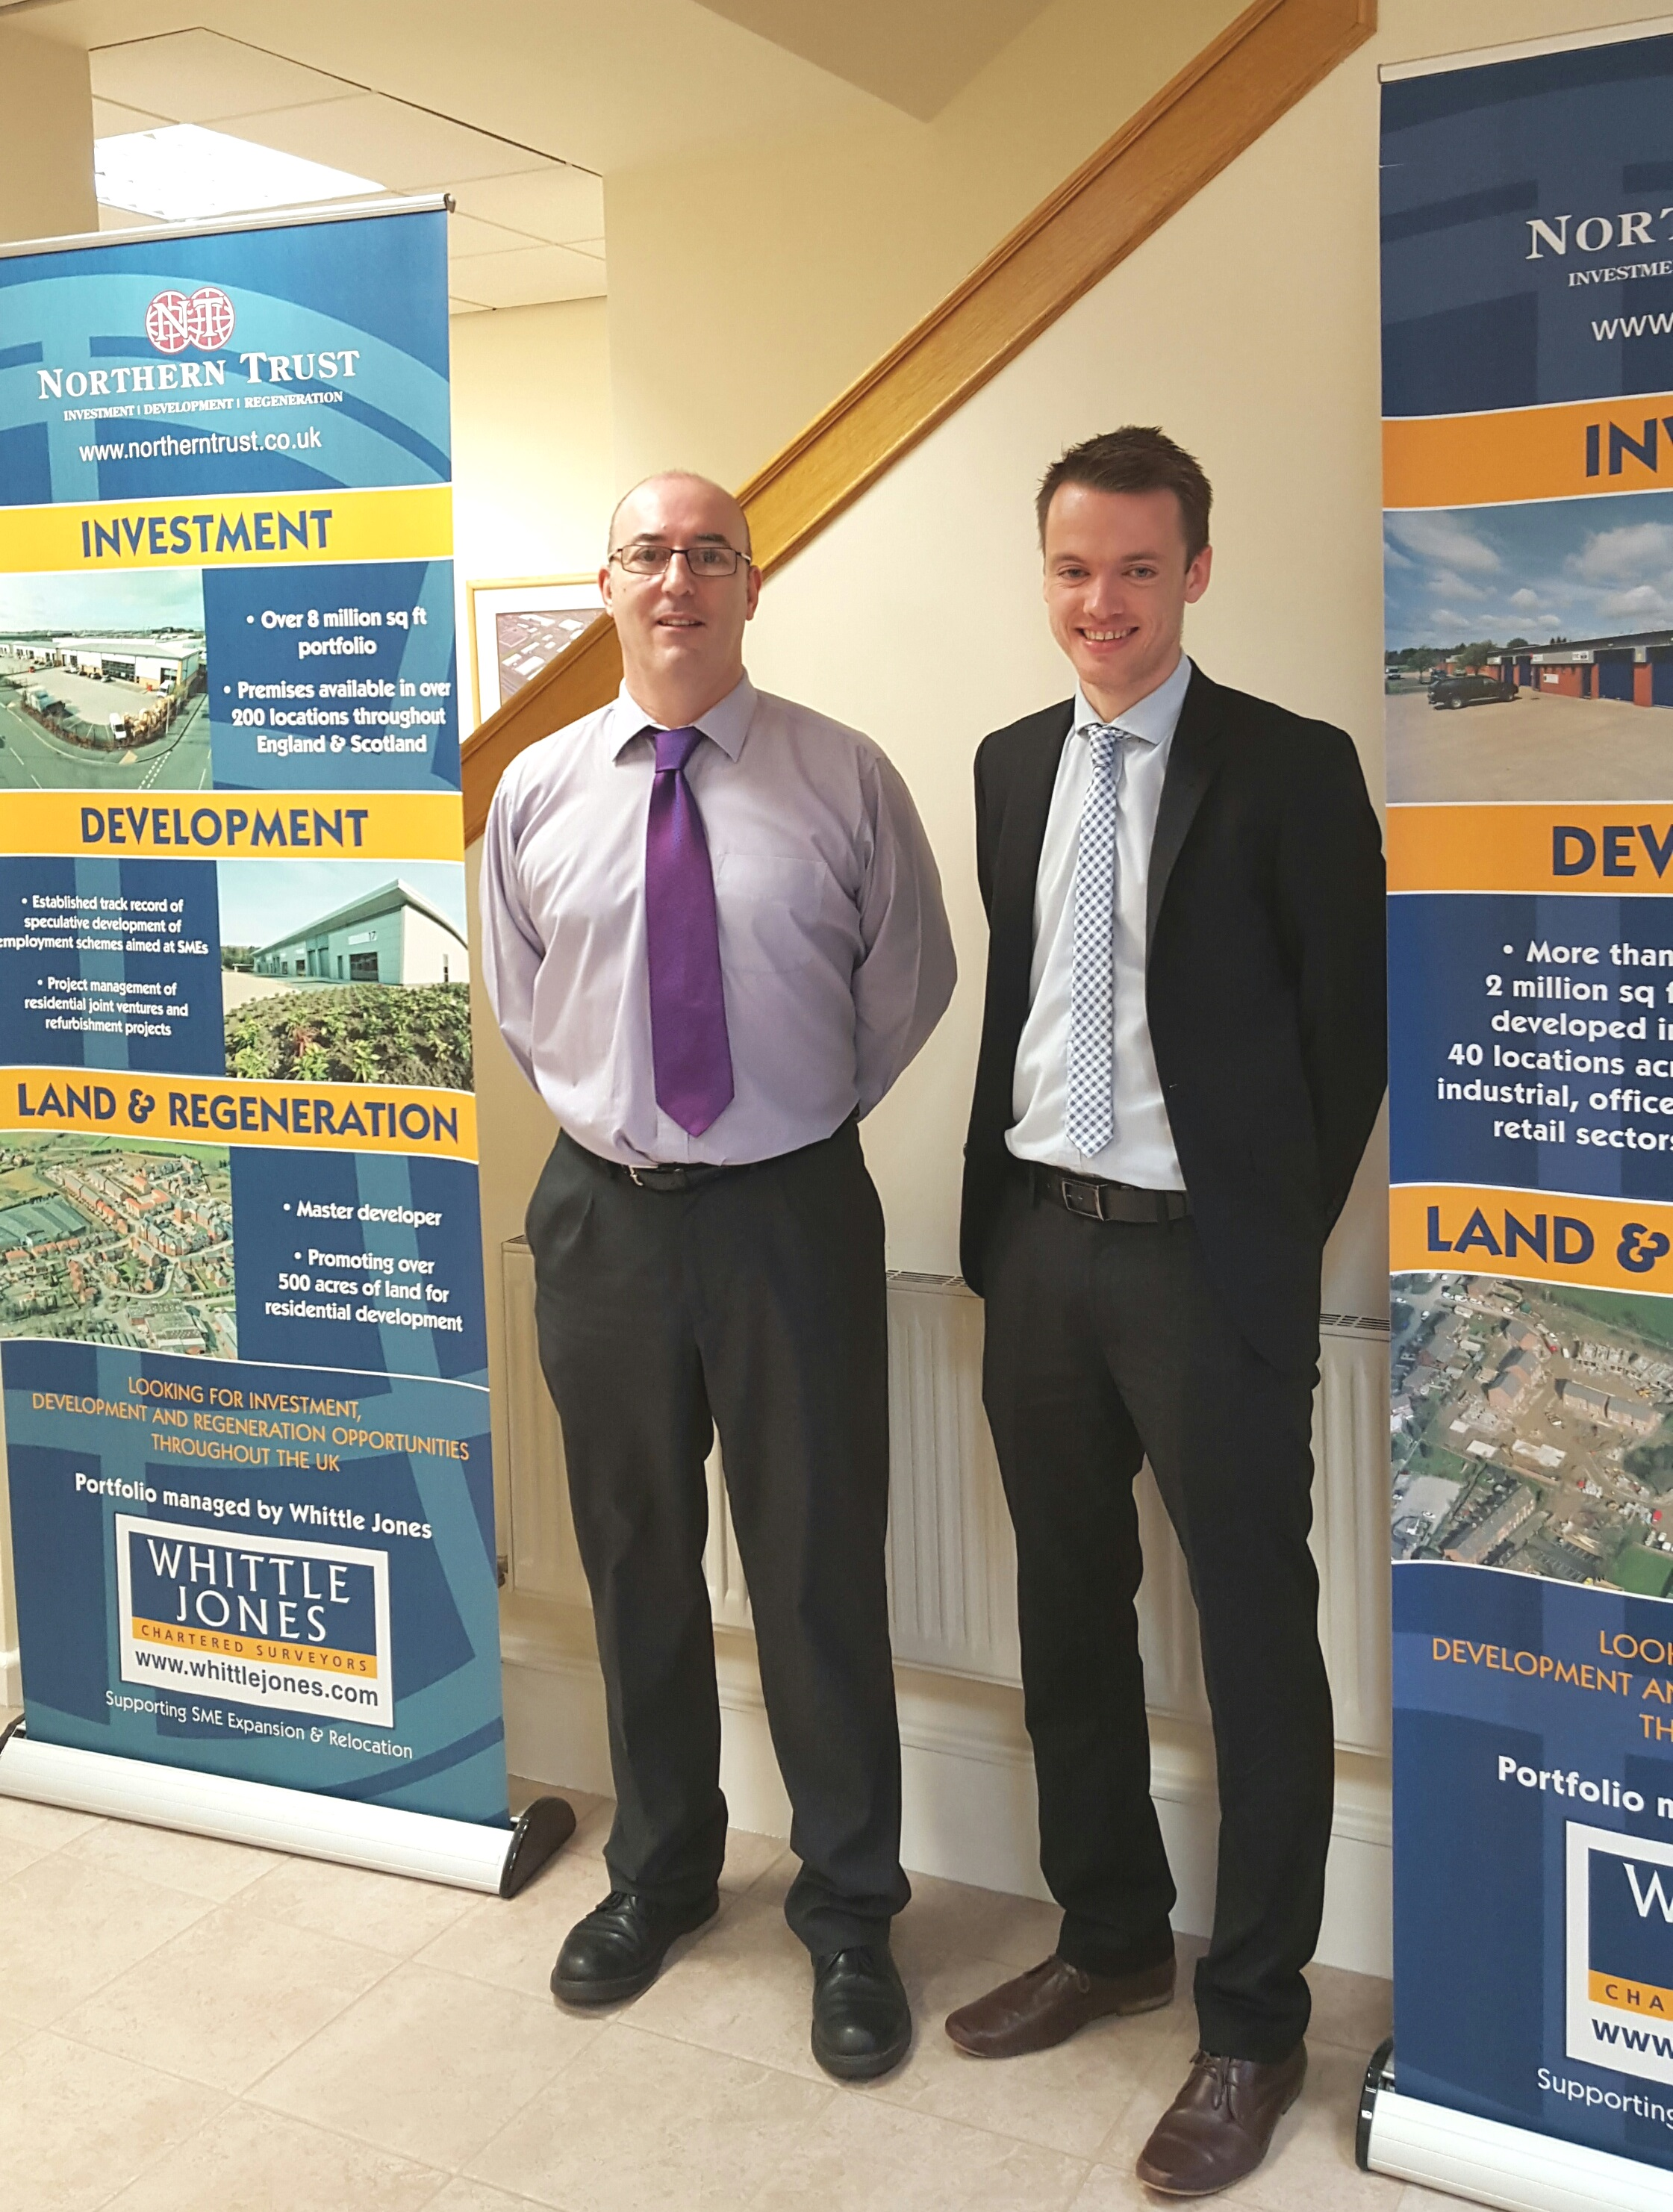 From left to right: Sean Kelly, Maintenance / Building Surveyor and Phil Hume, Lettings / Management Surveyor